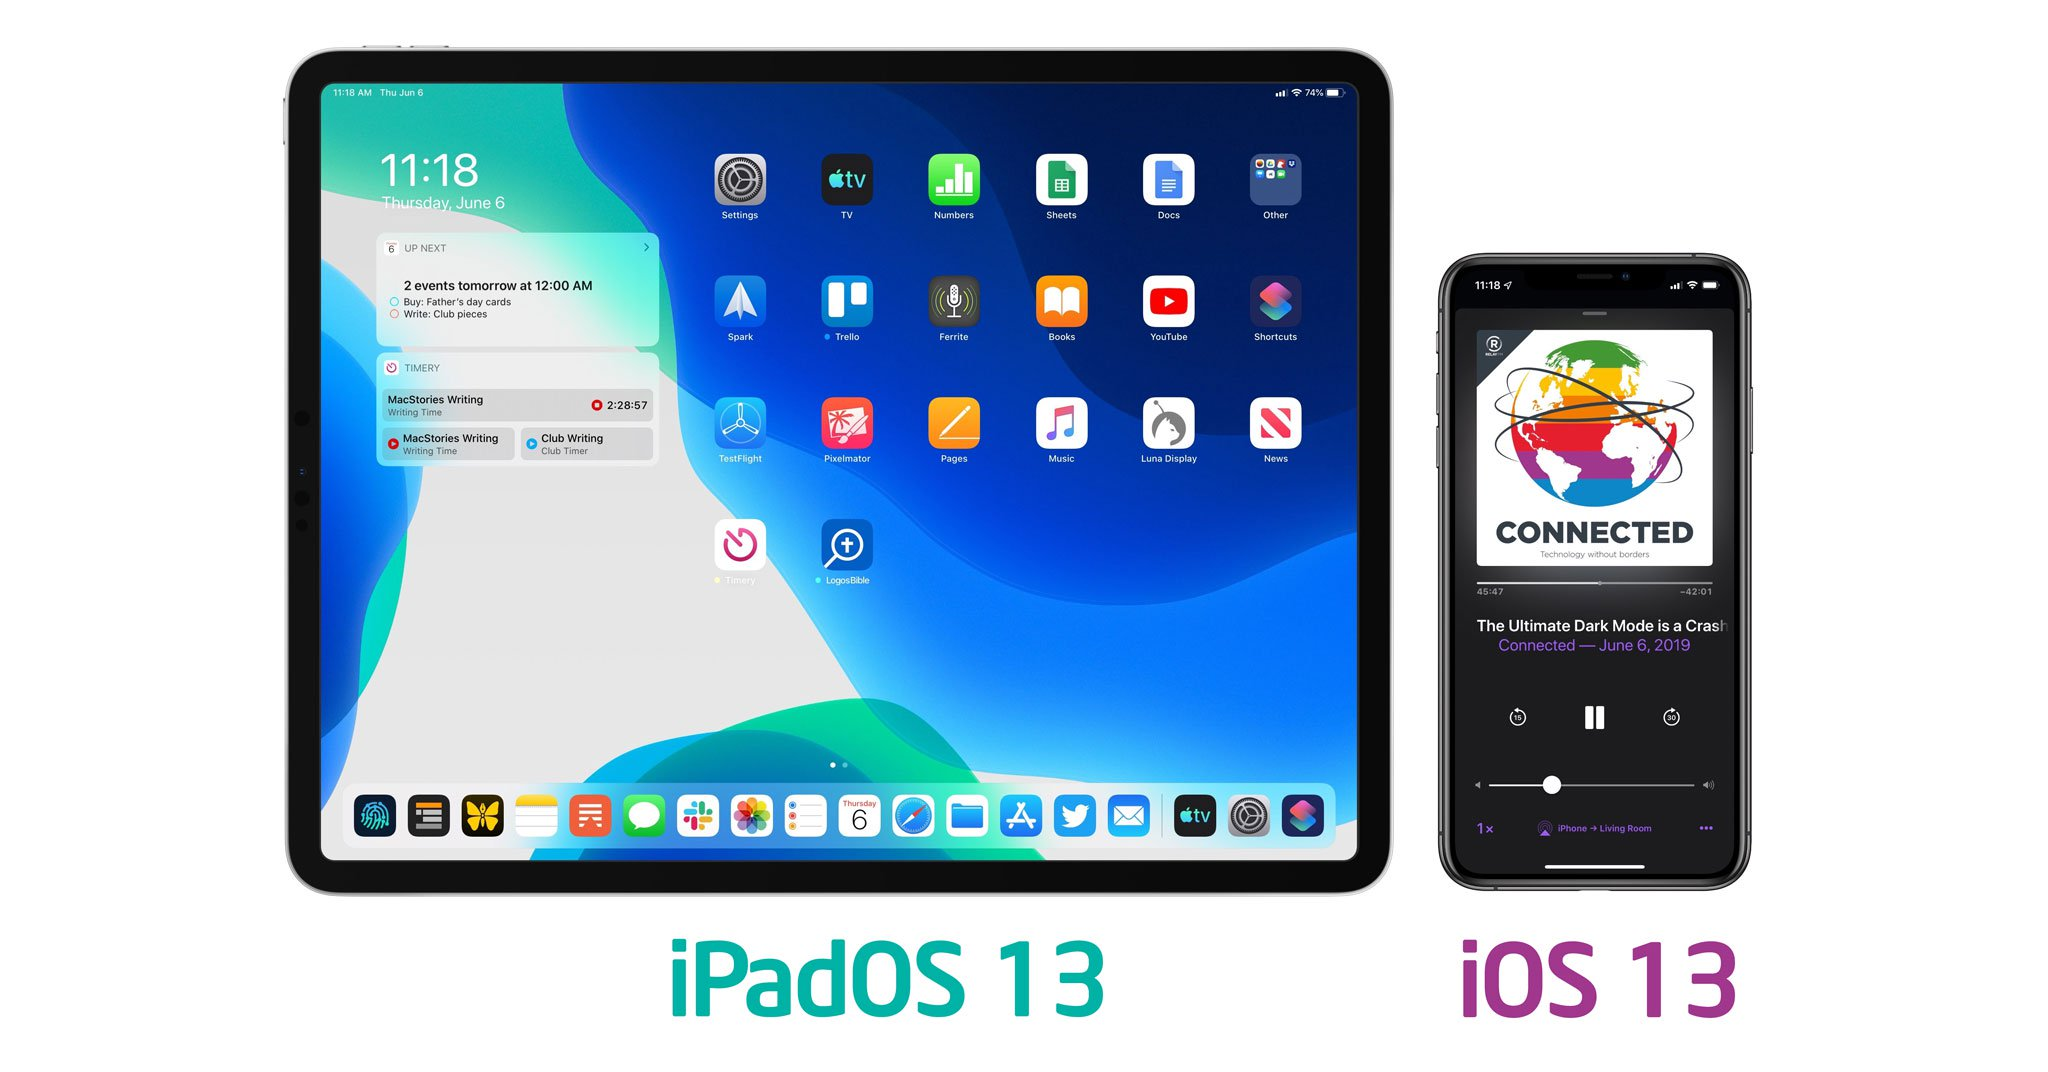 Link download IOS 13, iPadOS beta 2 or Profile beta 2. OTA, no need for a computer